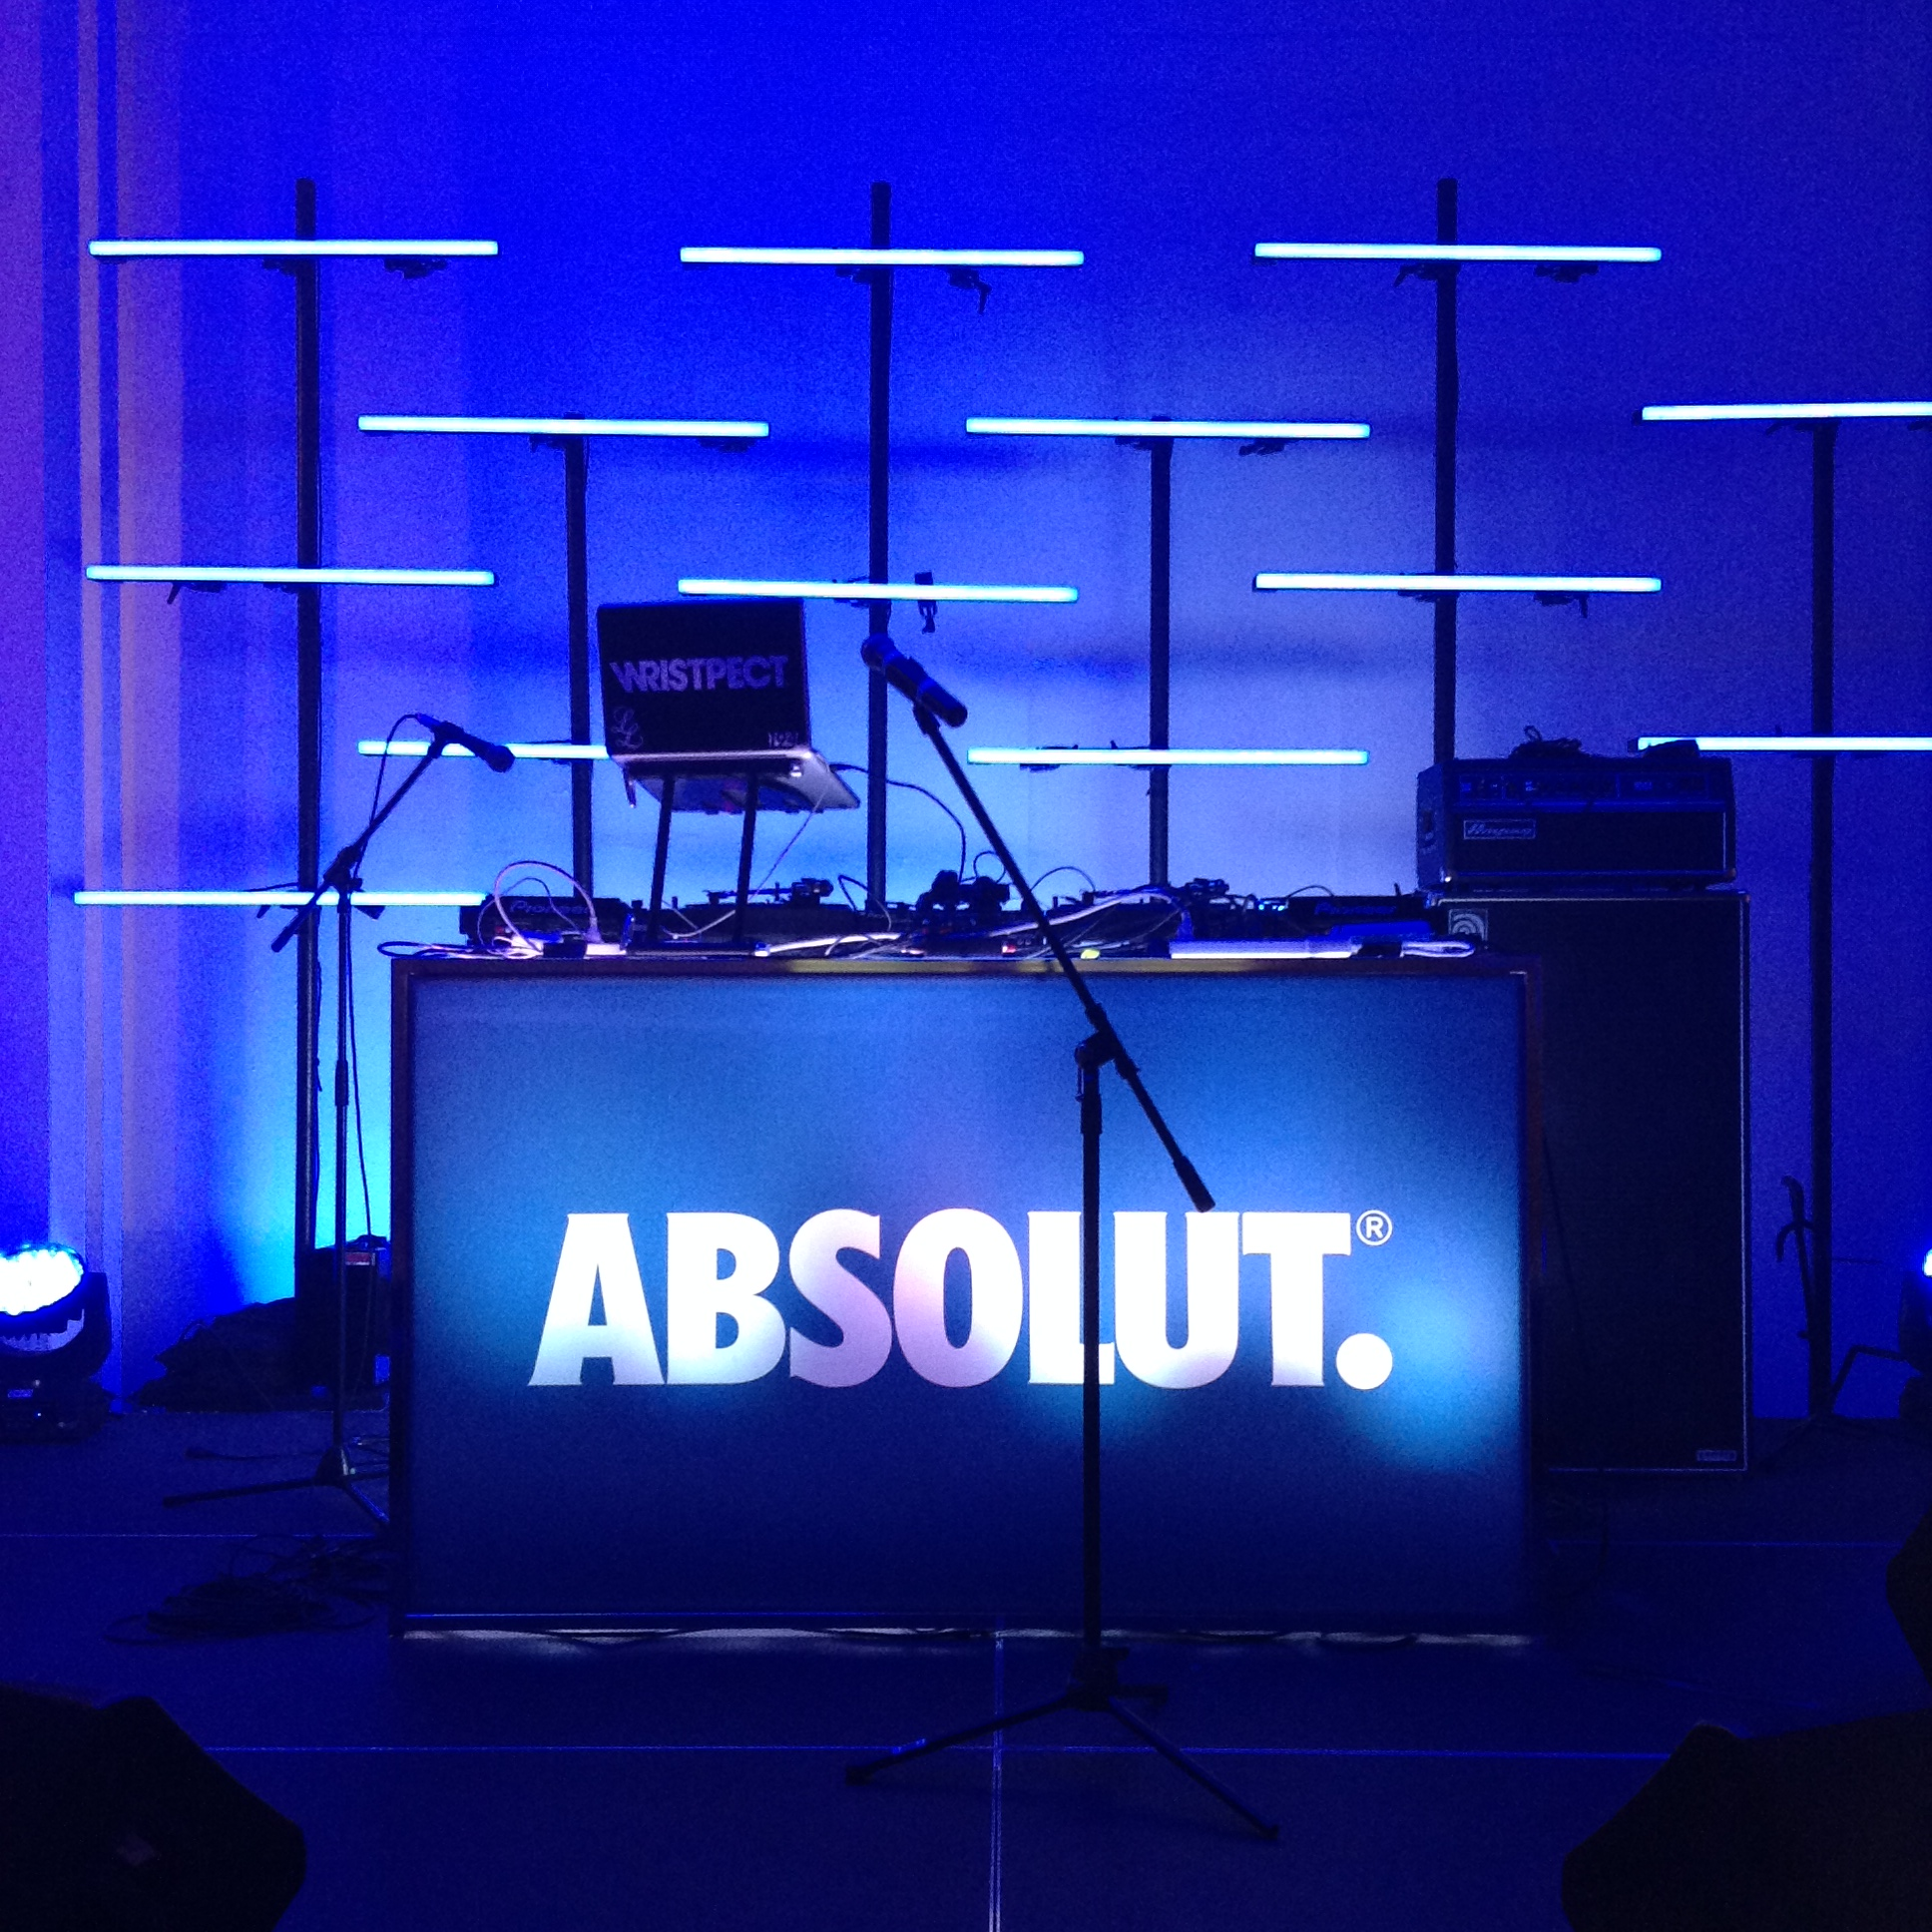 <strong>ABSOLUT MAKERFEST</strong>